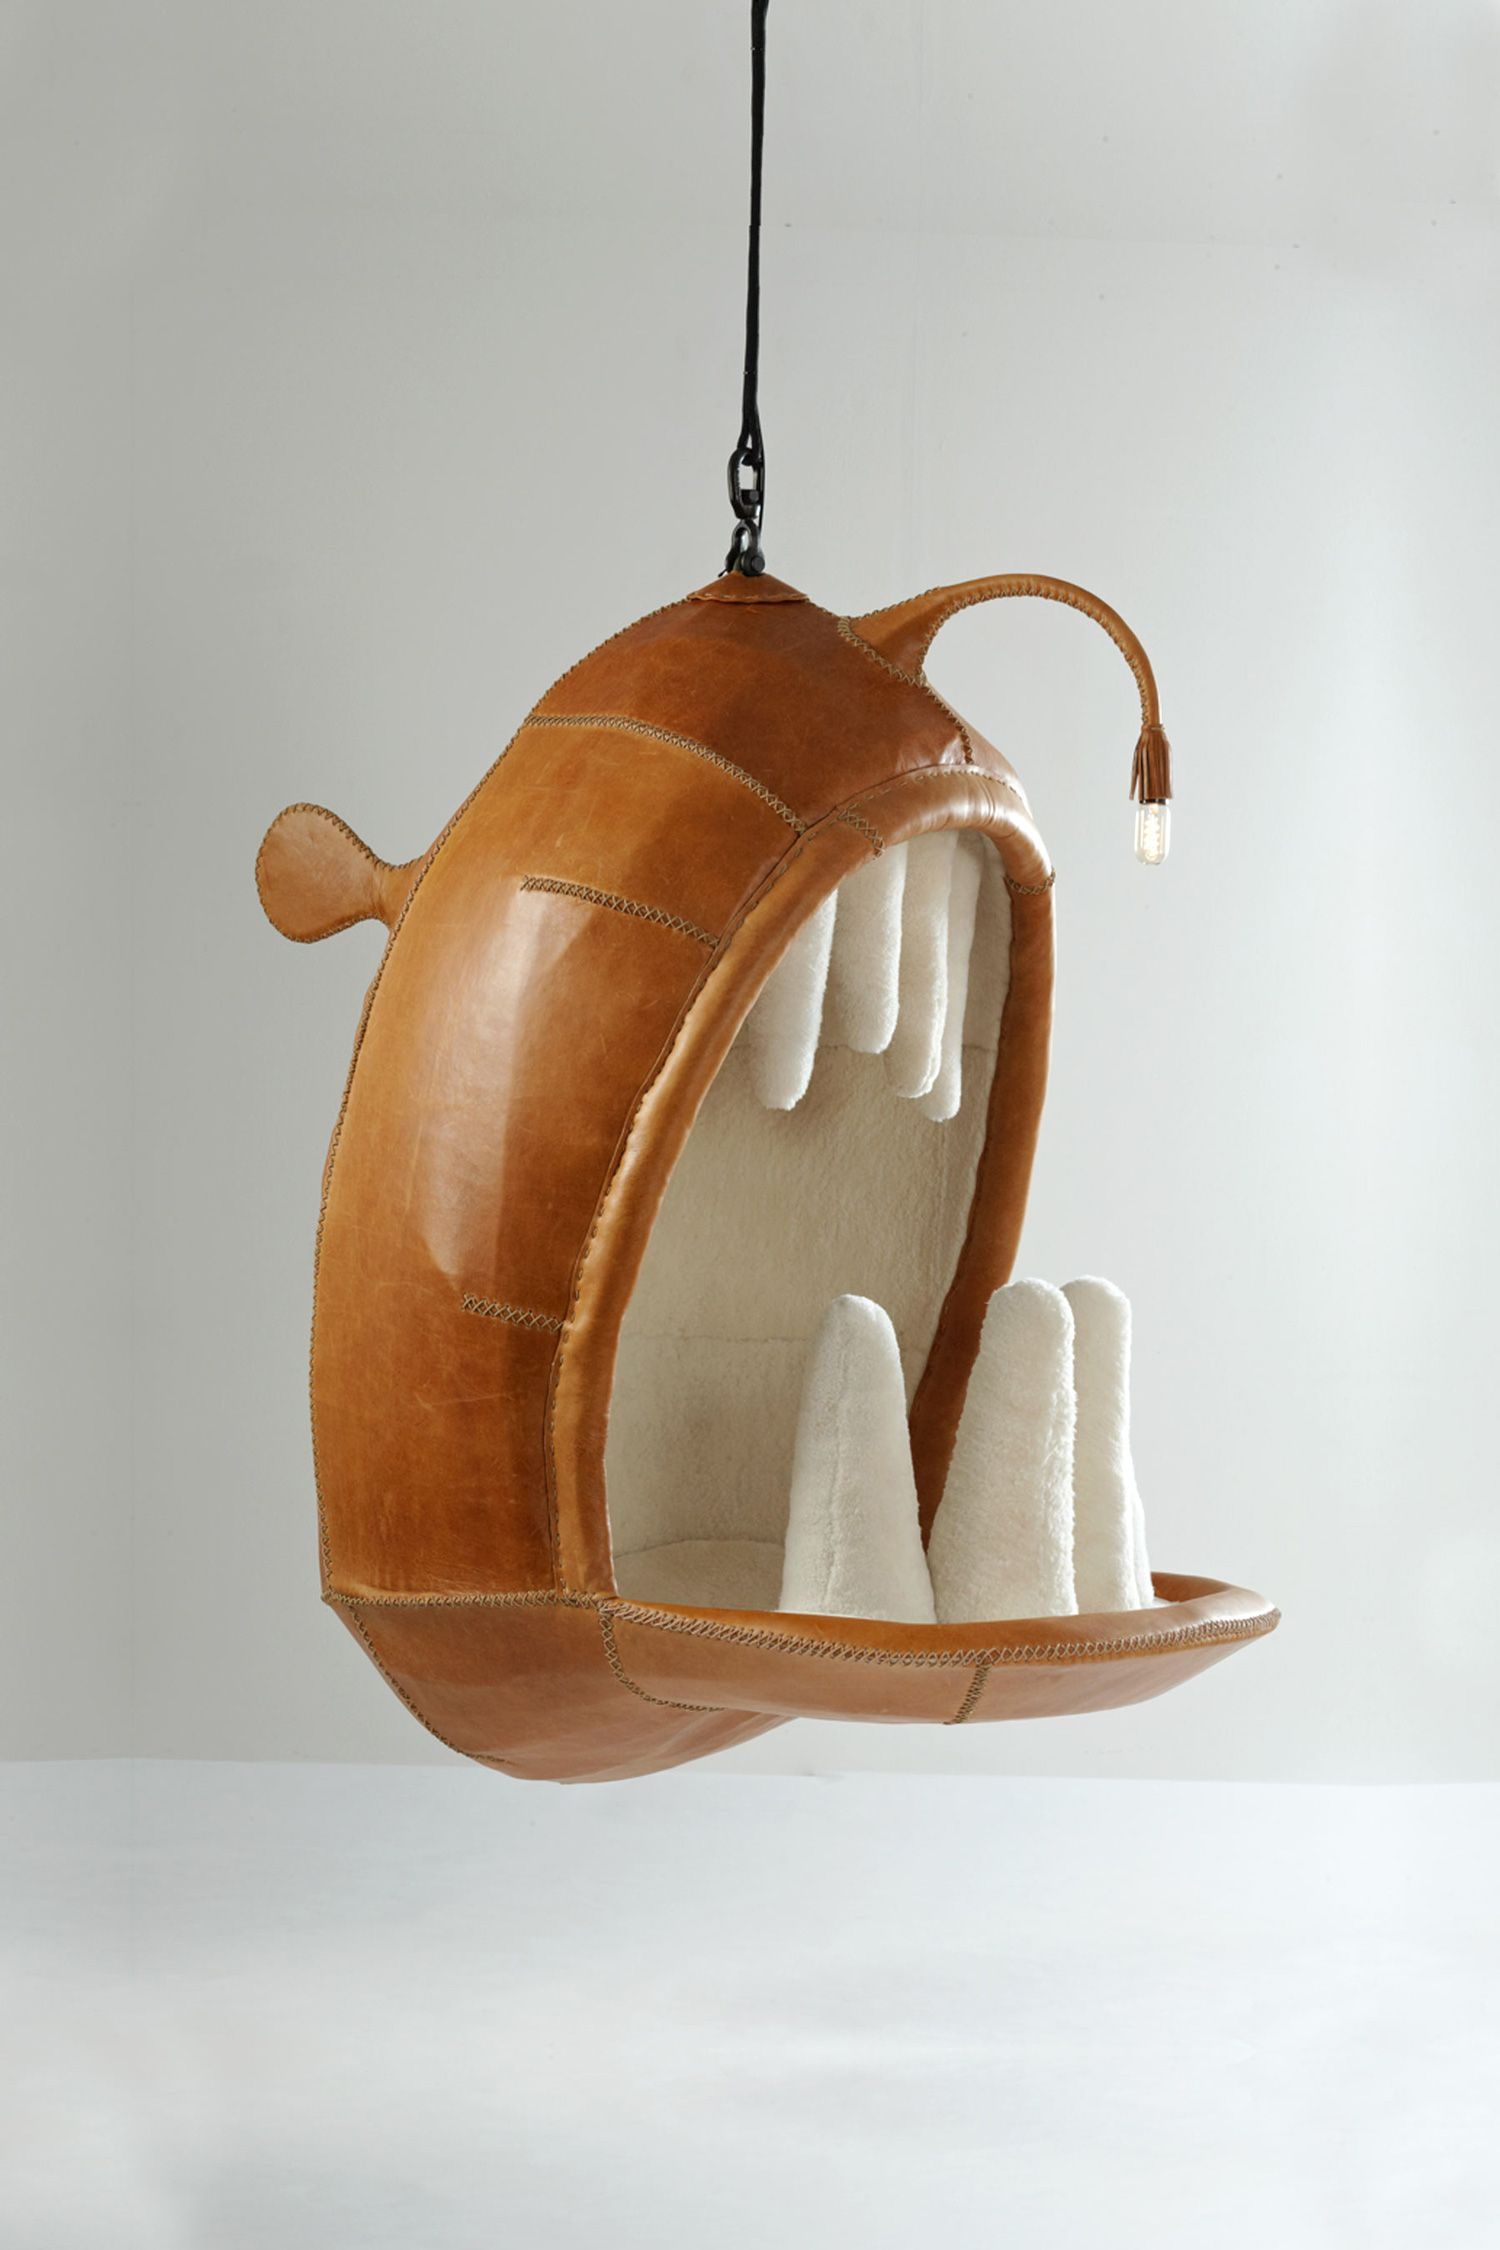 Suspended+Sofas,+Cocoons+\u0026+Nests+by+Porky+Hefer+|+Yellowtrace ...